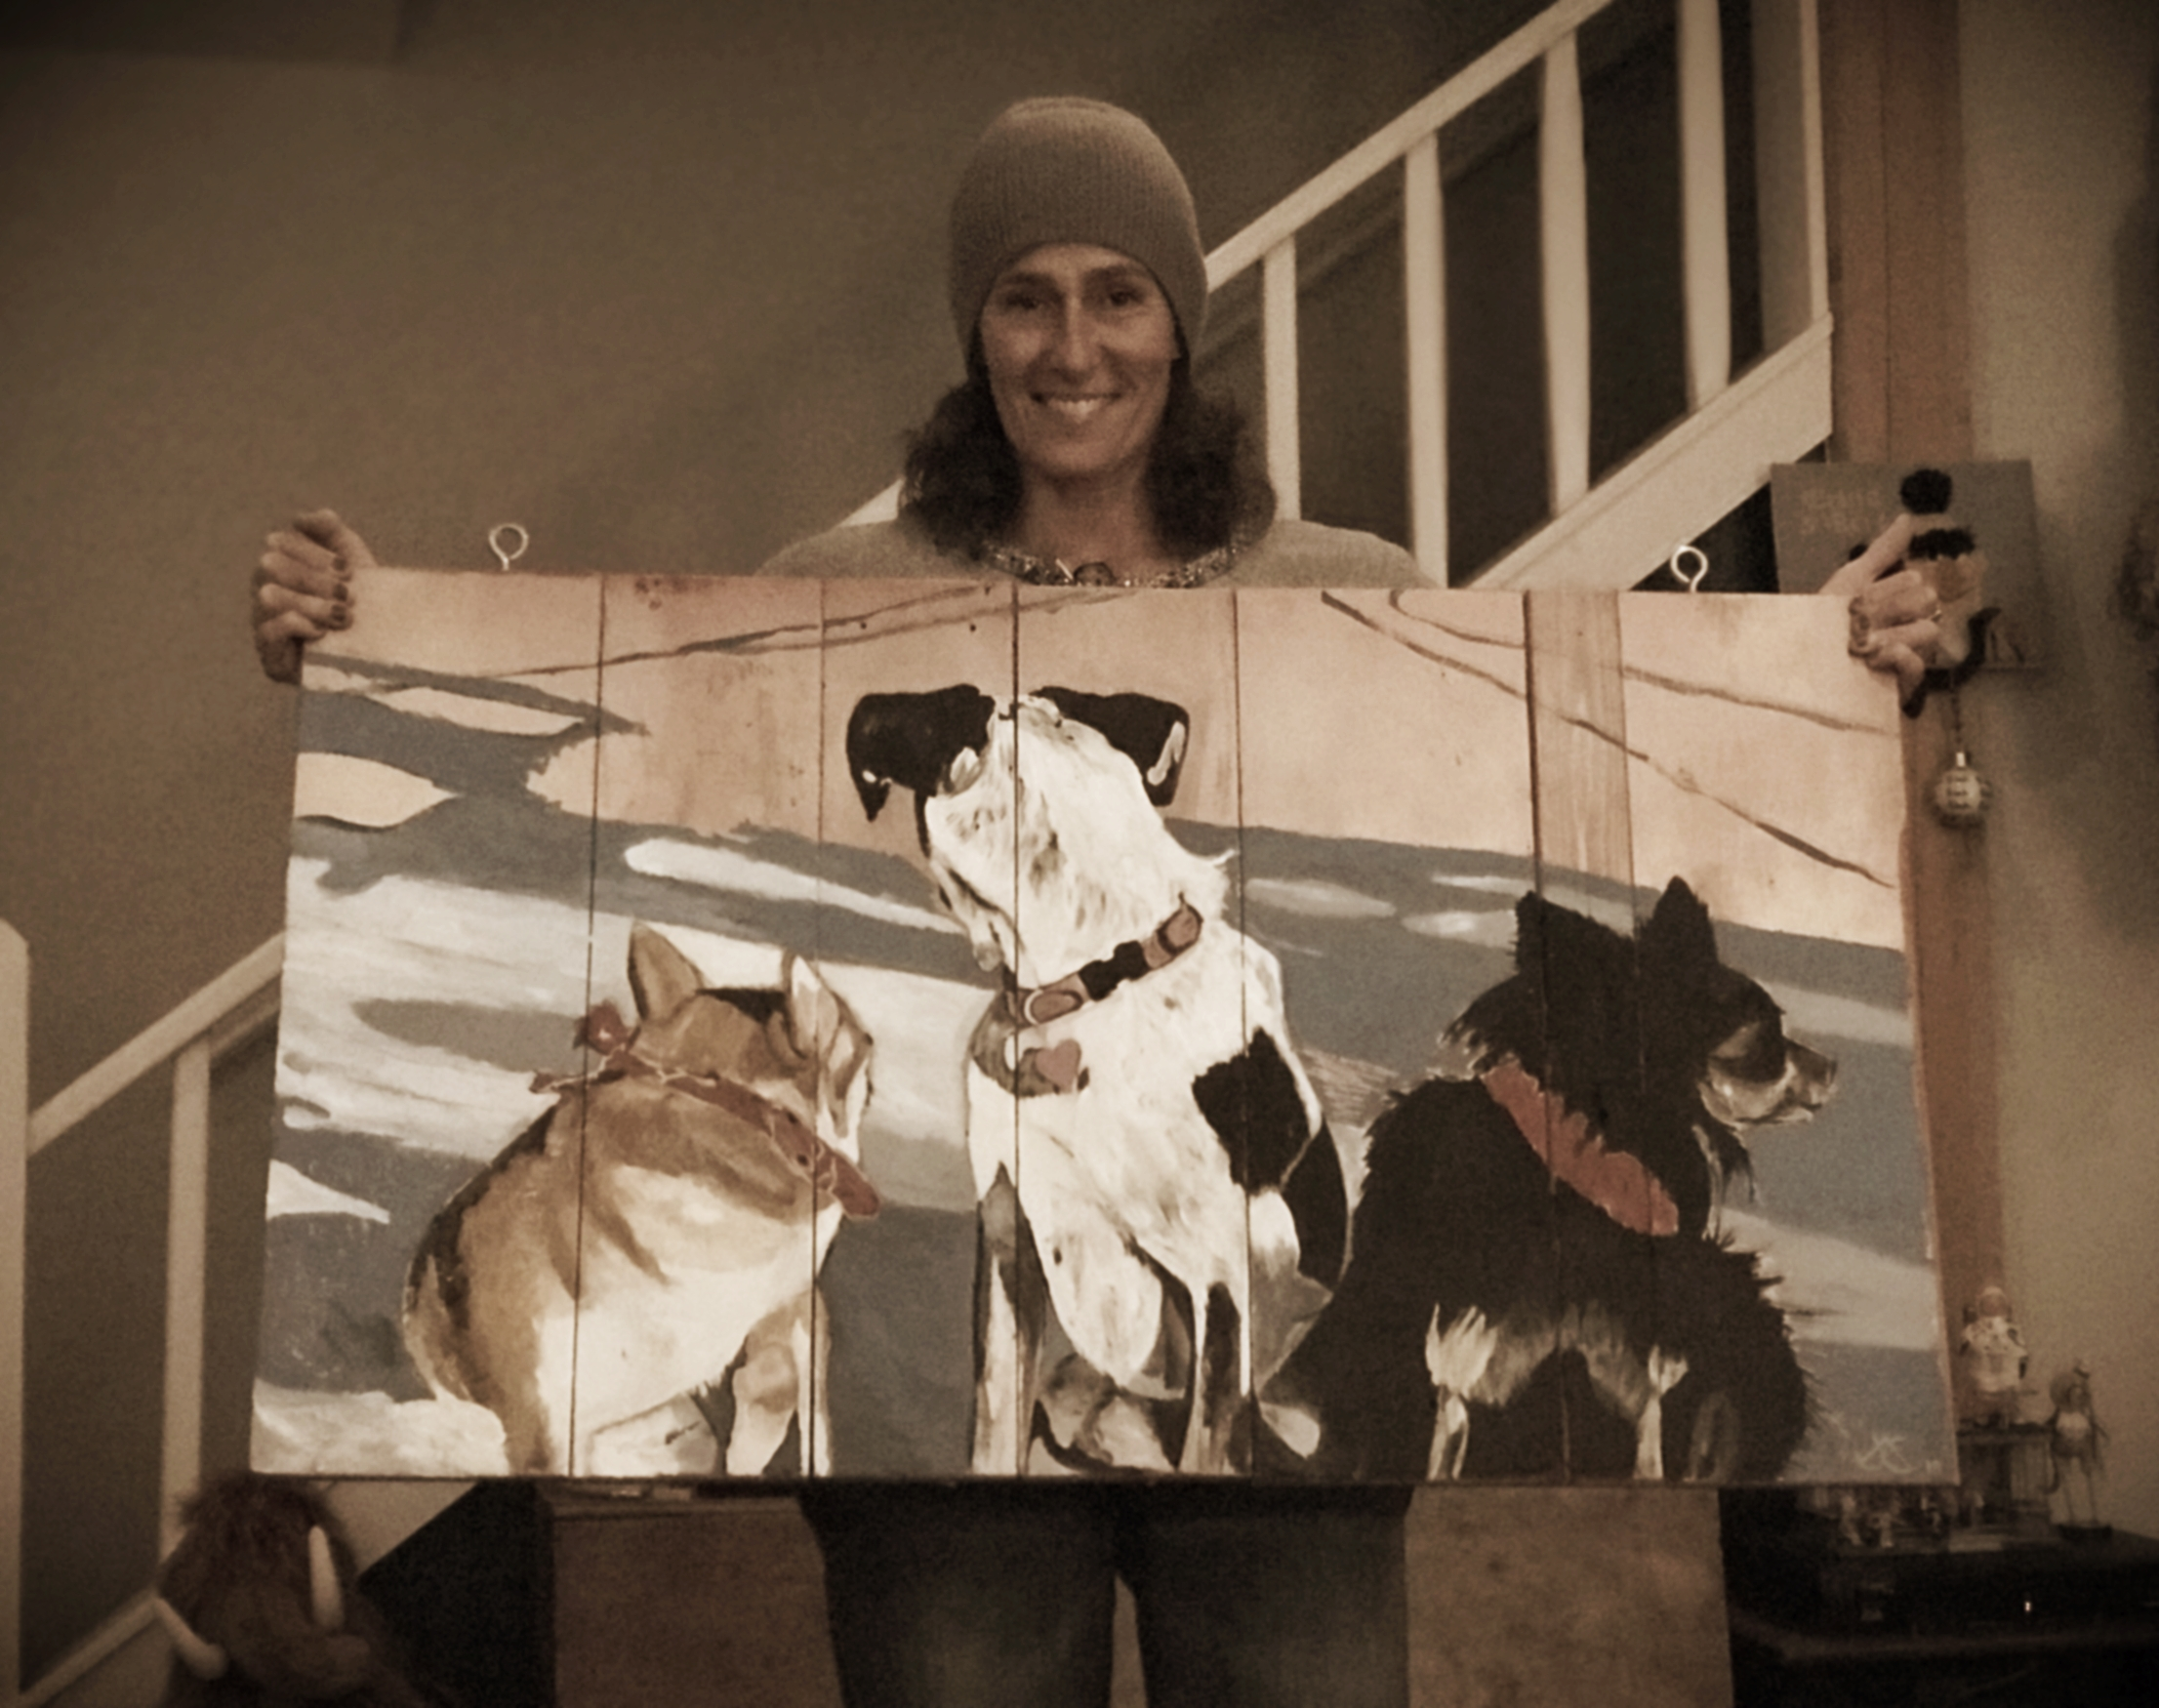 my sister Julie with her masterpiece for MOYO xo